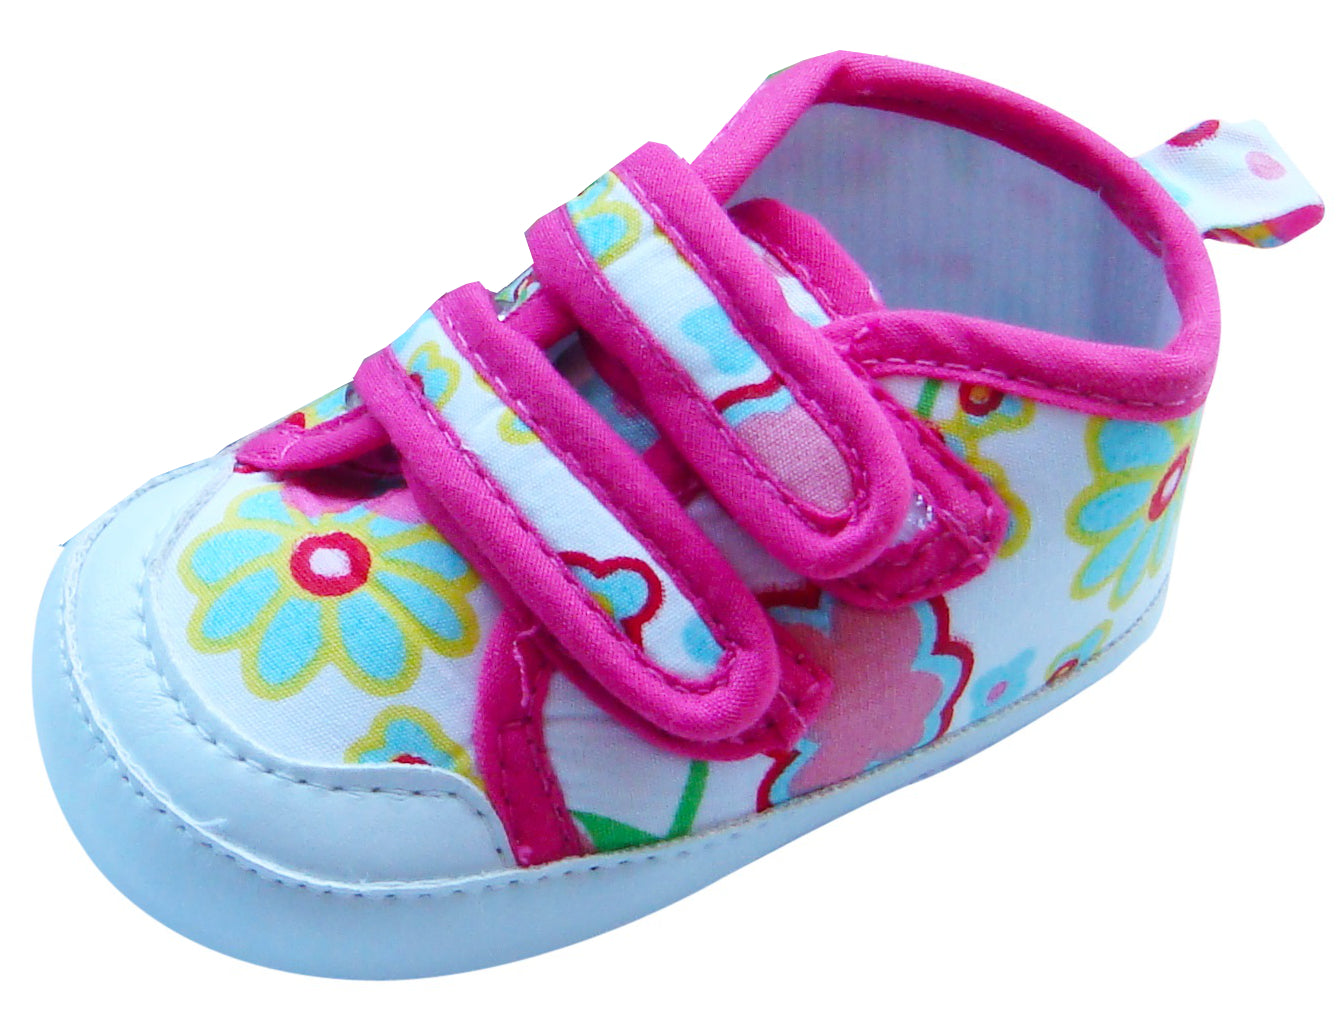 MABINI Baby Girls Shoes / Booties With Floral Design & Hook & Loop Fastener Straps